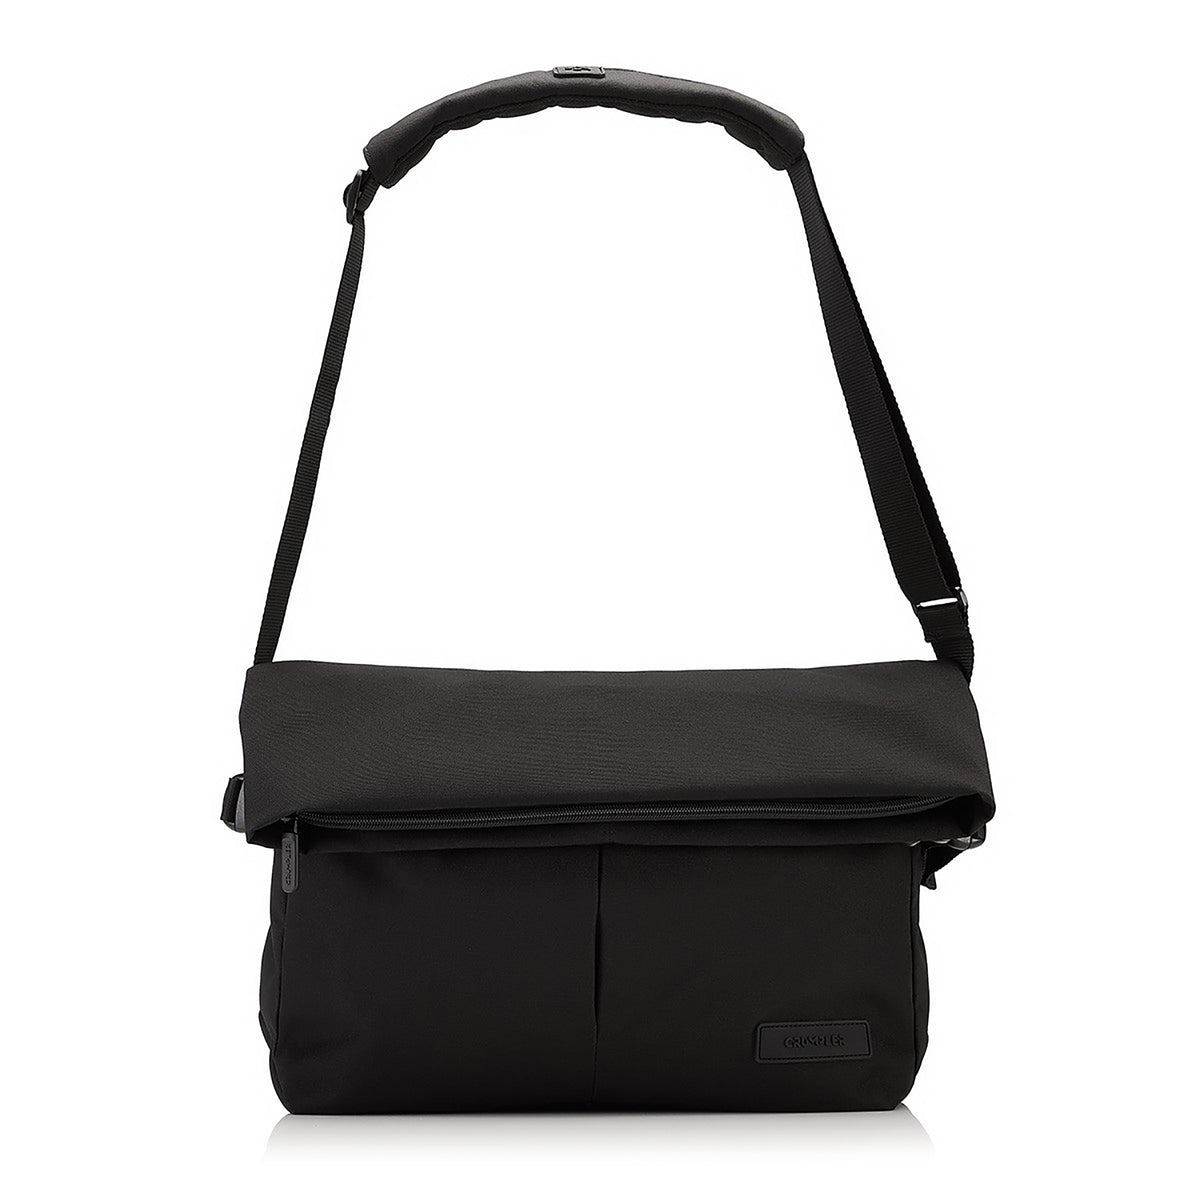 "Crumpler: Rocket Booster 15"" Laptop Bag - Black"